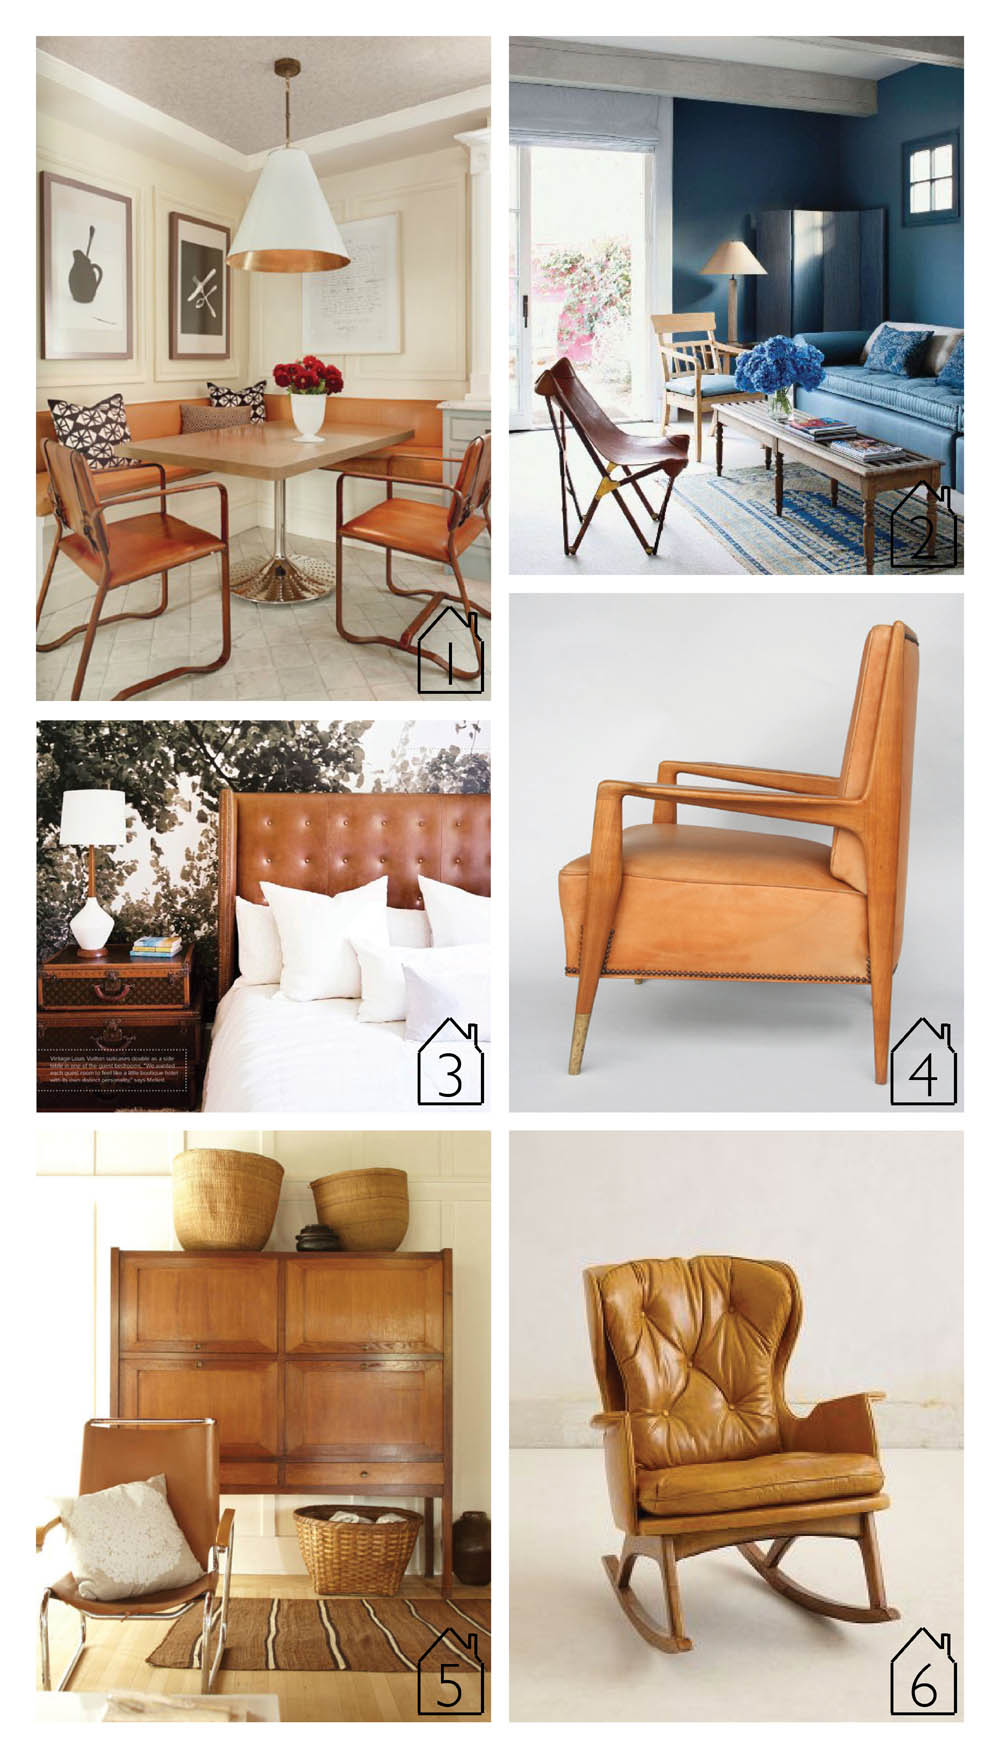 1. via Vintage Luxe  2. source unknown  3. via Lonny  4. via Amsterdam modern armchair  5. via A Note on Design  6. Finn rocker via Anthropologie